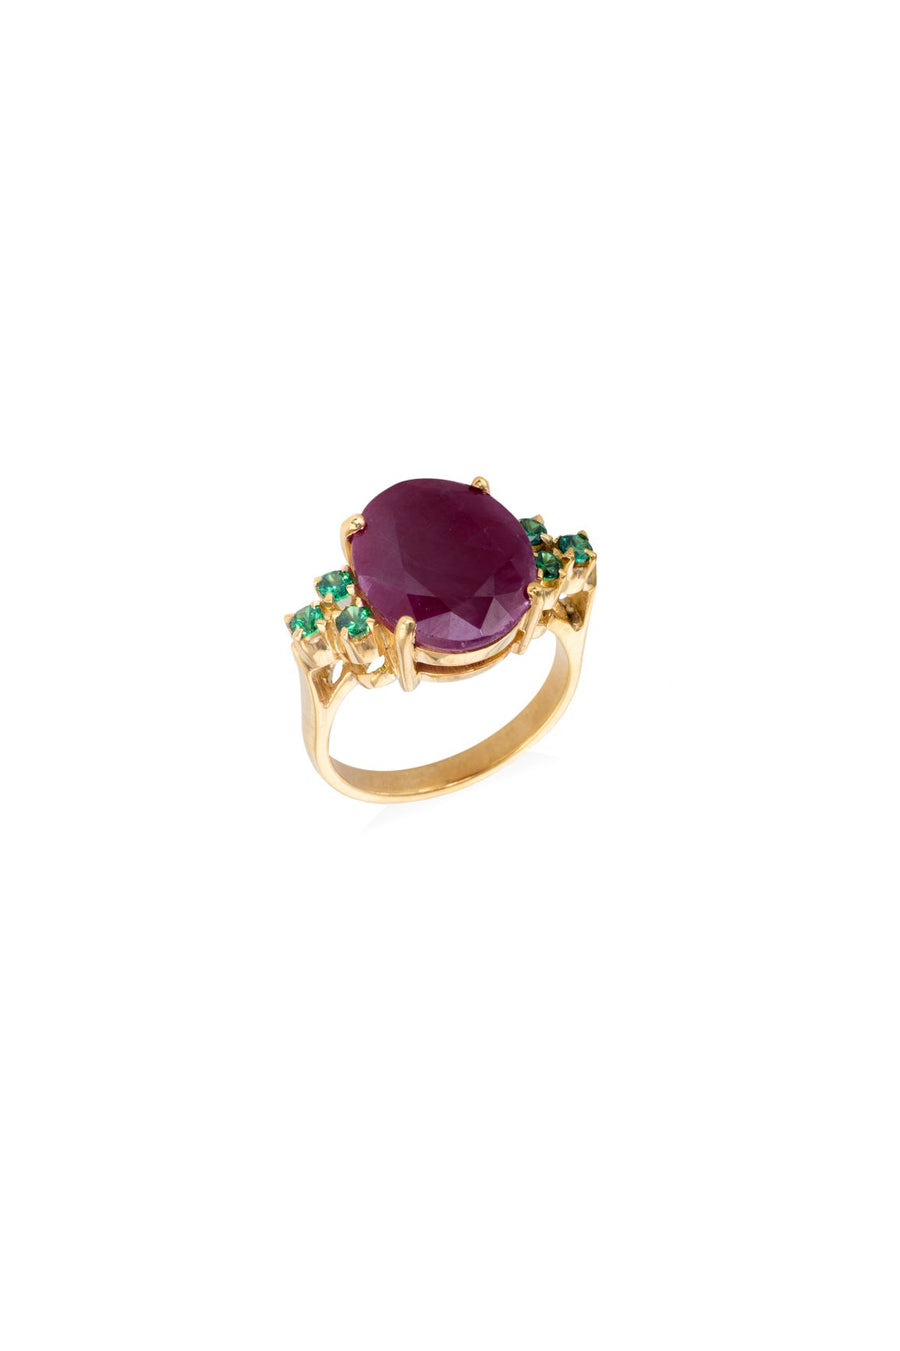 The Odette Gold Ruby & Emerald Cocktail Ring Ring Rosie Odette Jewellery